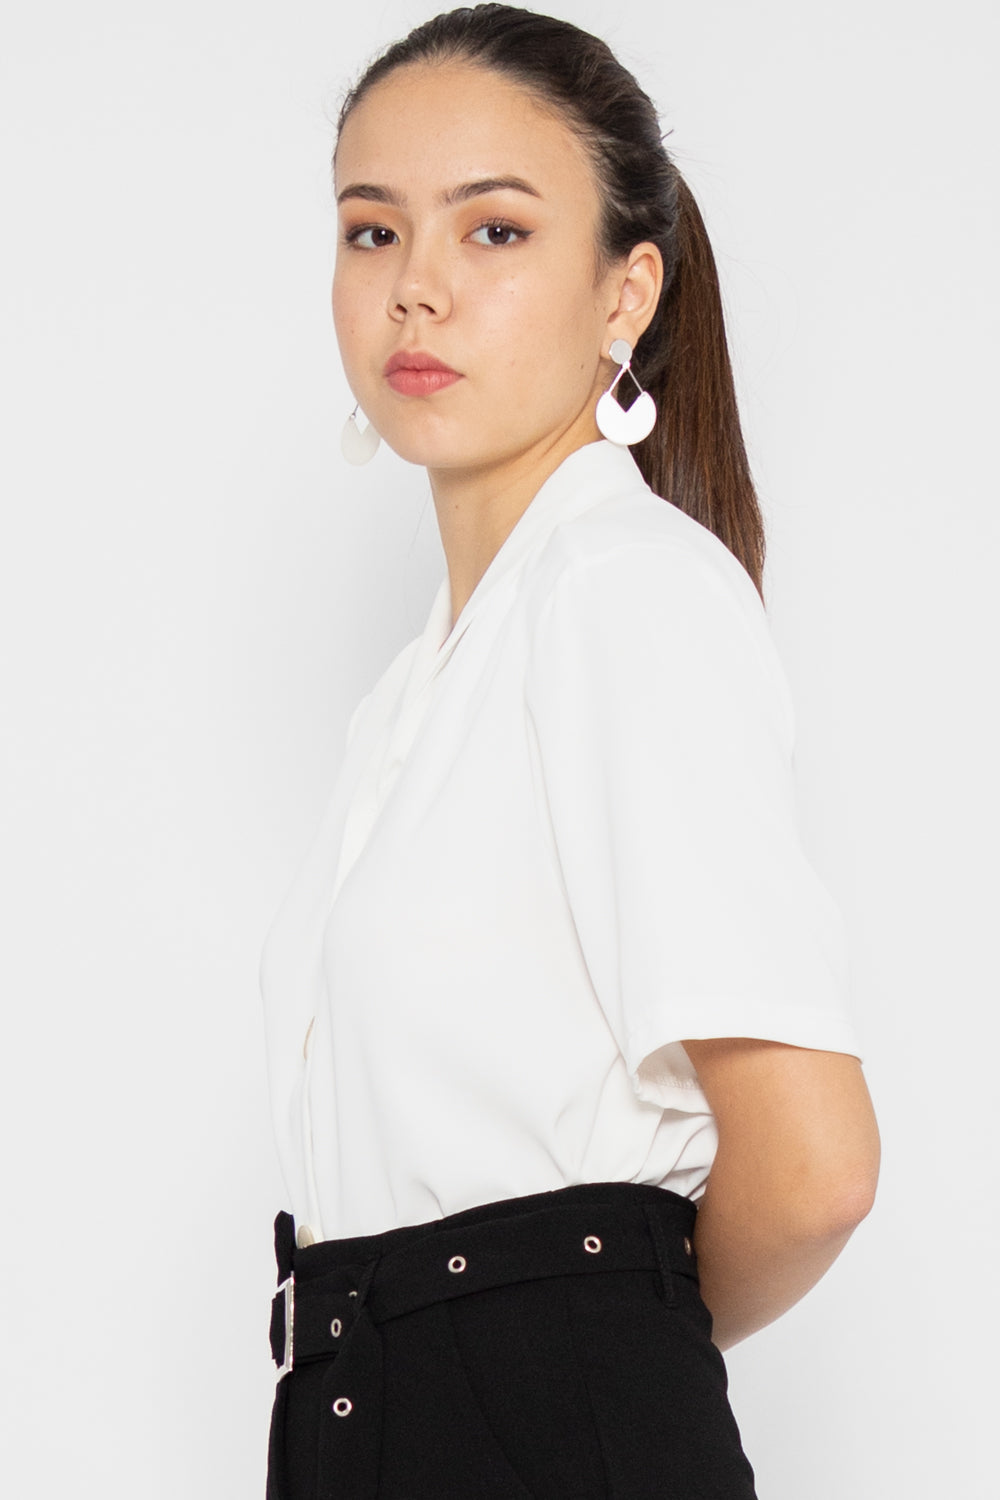 Taylor V Neck Button Blouse - Three One Duo